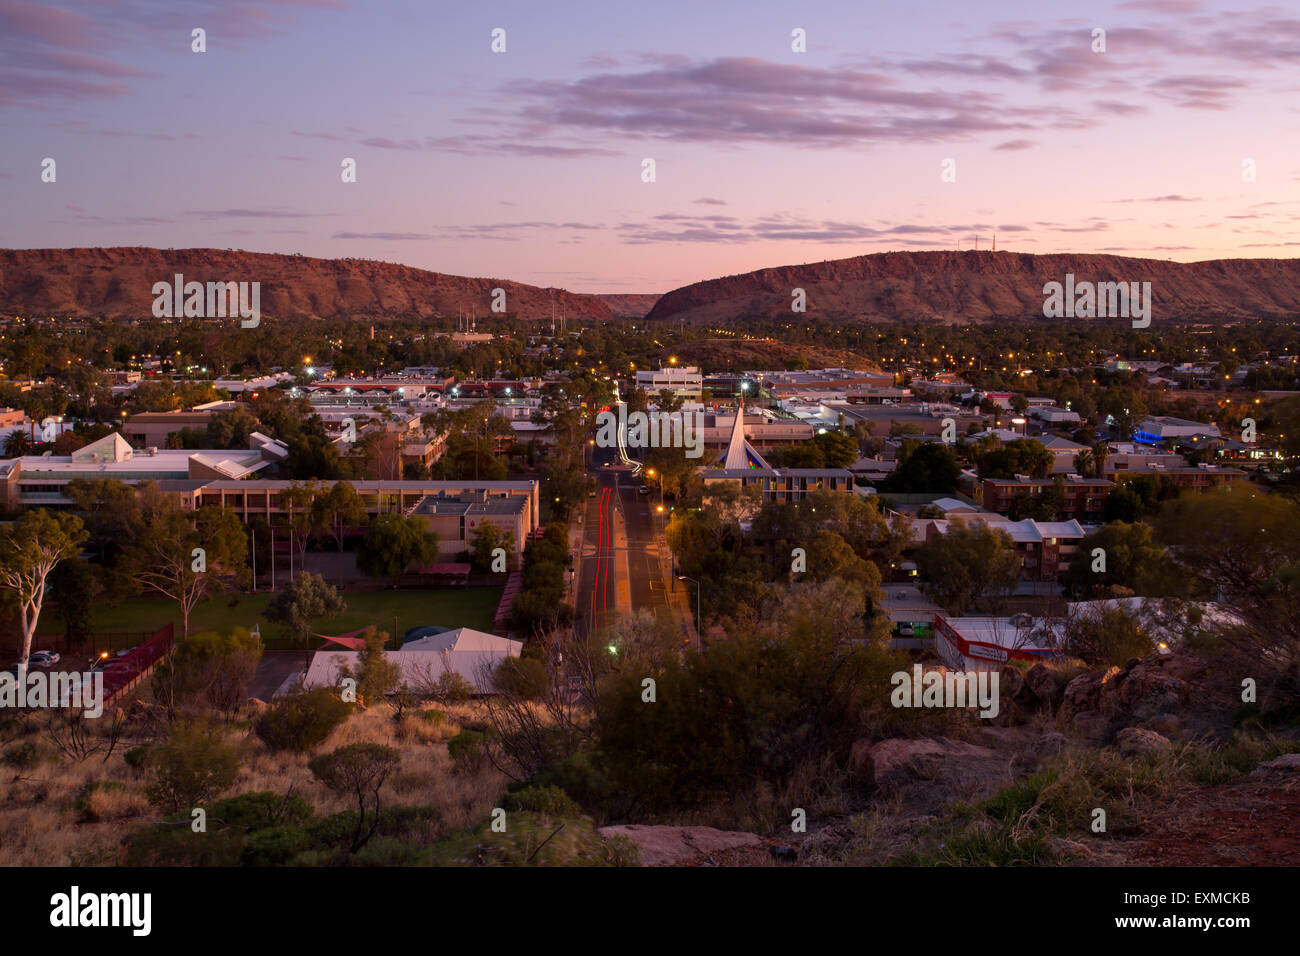 View from Anzac Hill down Hartley St on a fine winter's evening in Alice Springs, Northern Territory, Australia - Stock Image